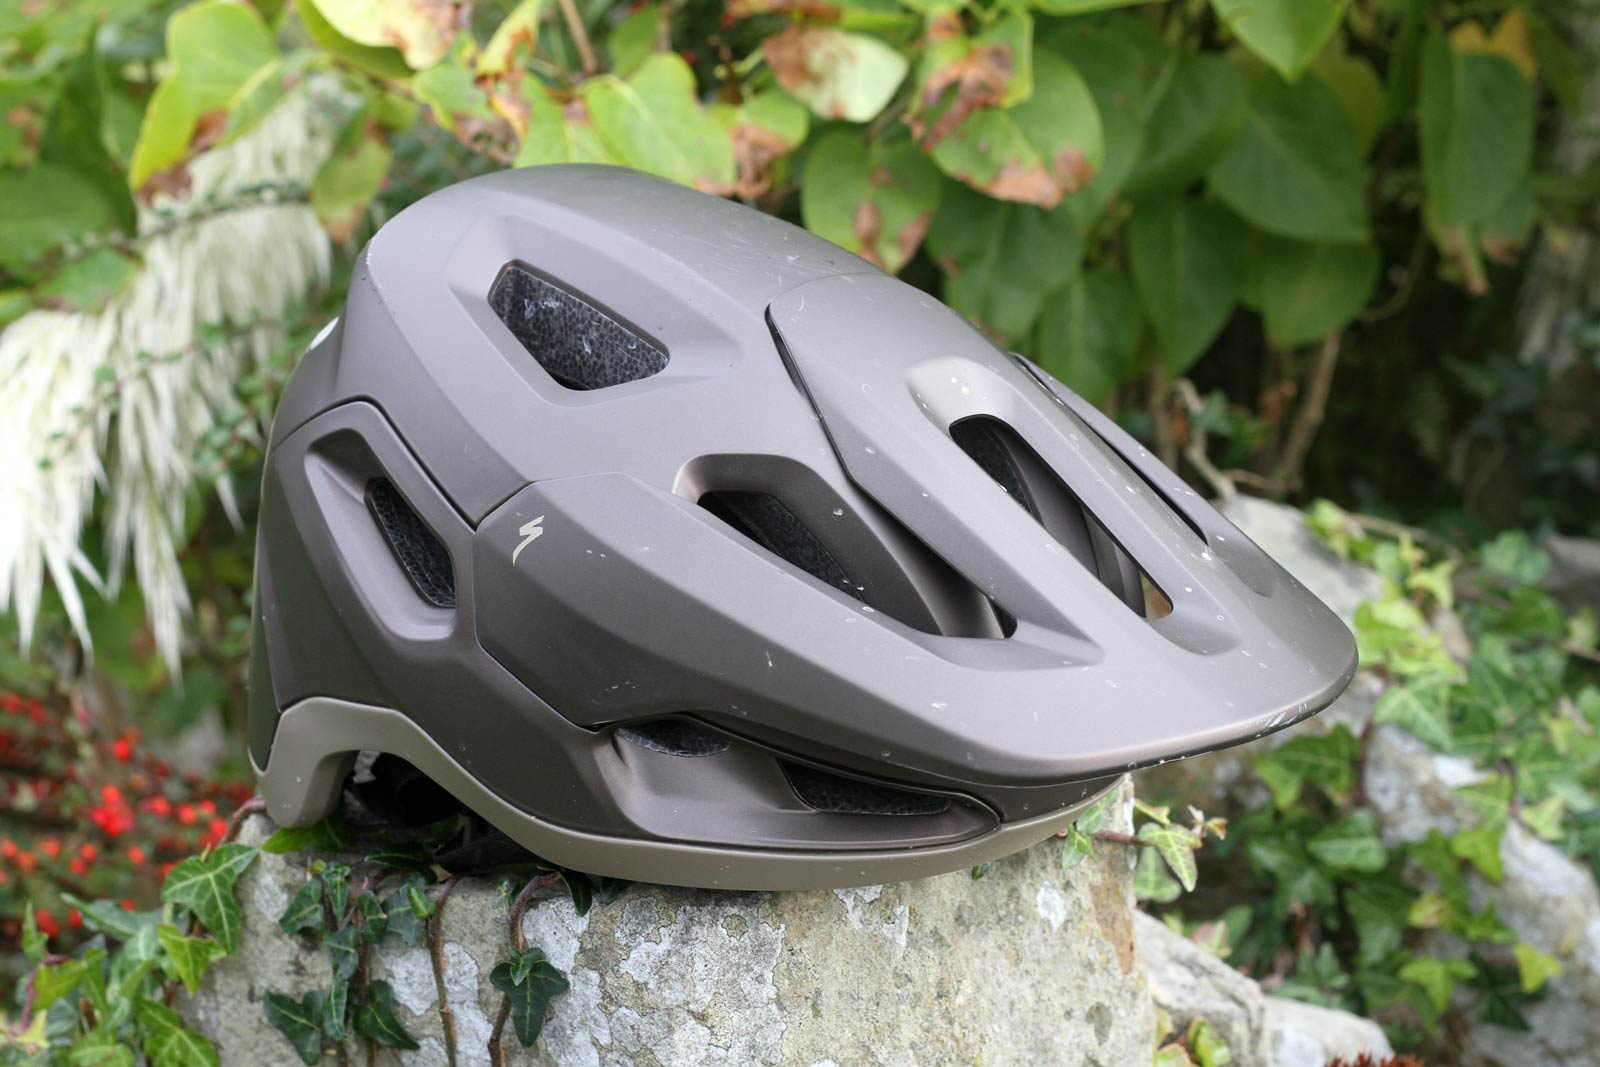 specialized tactic 4 helmet review